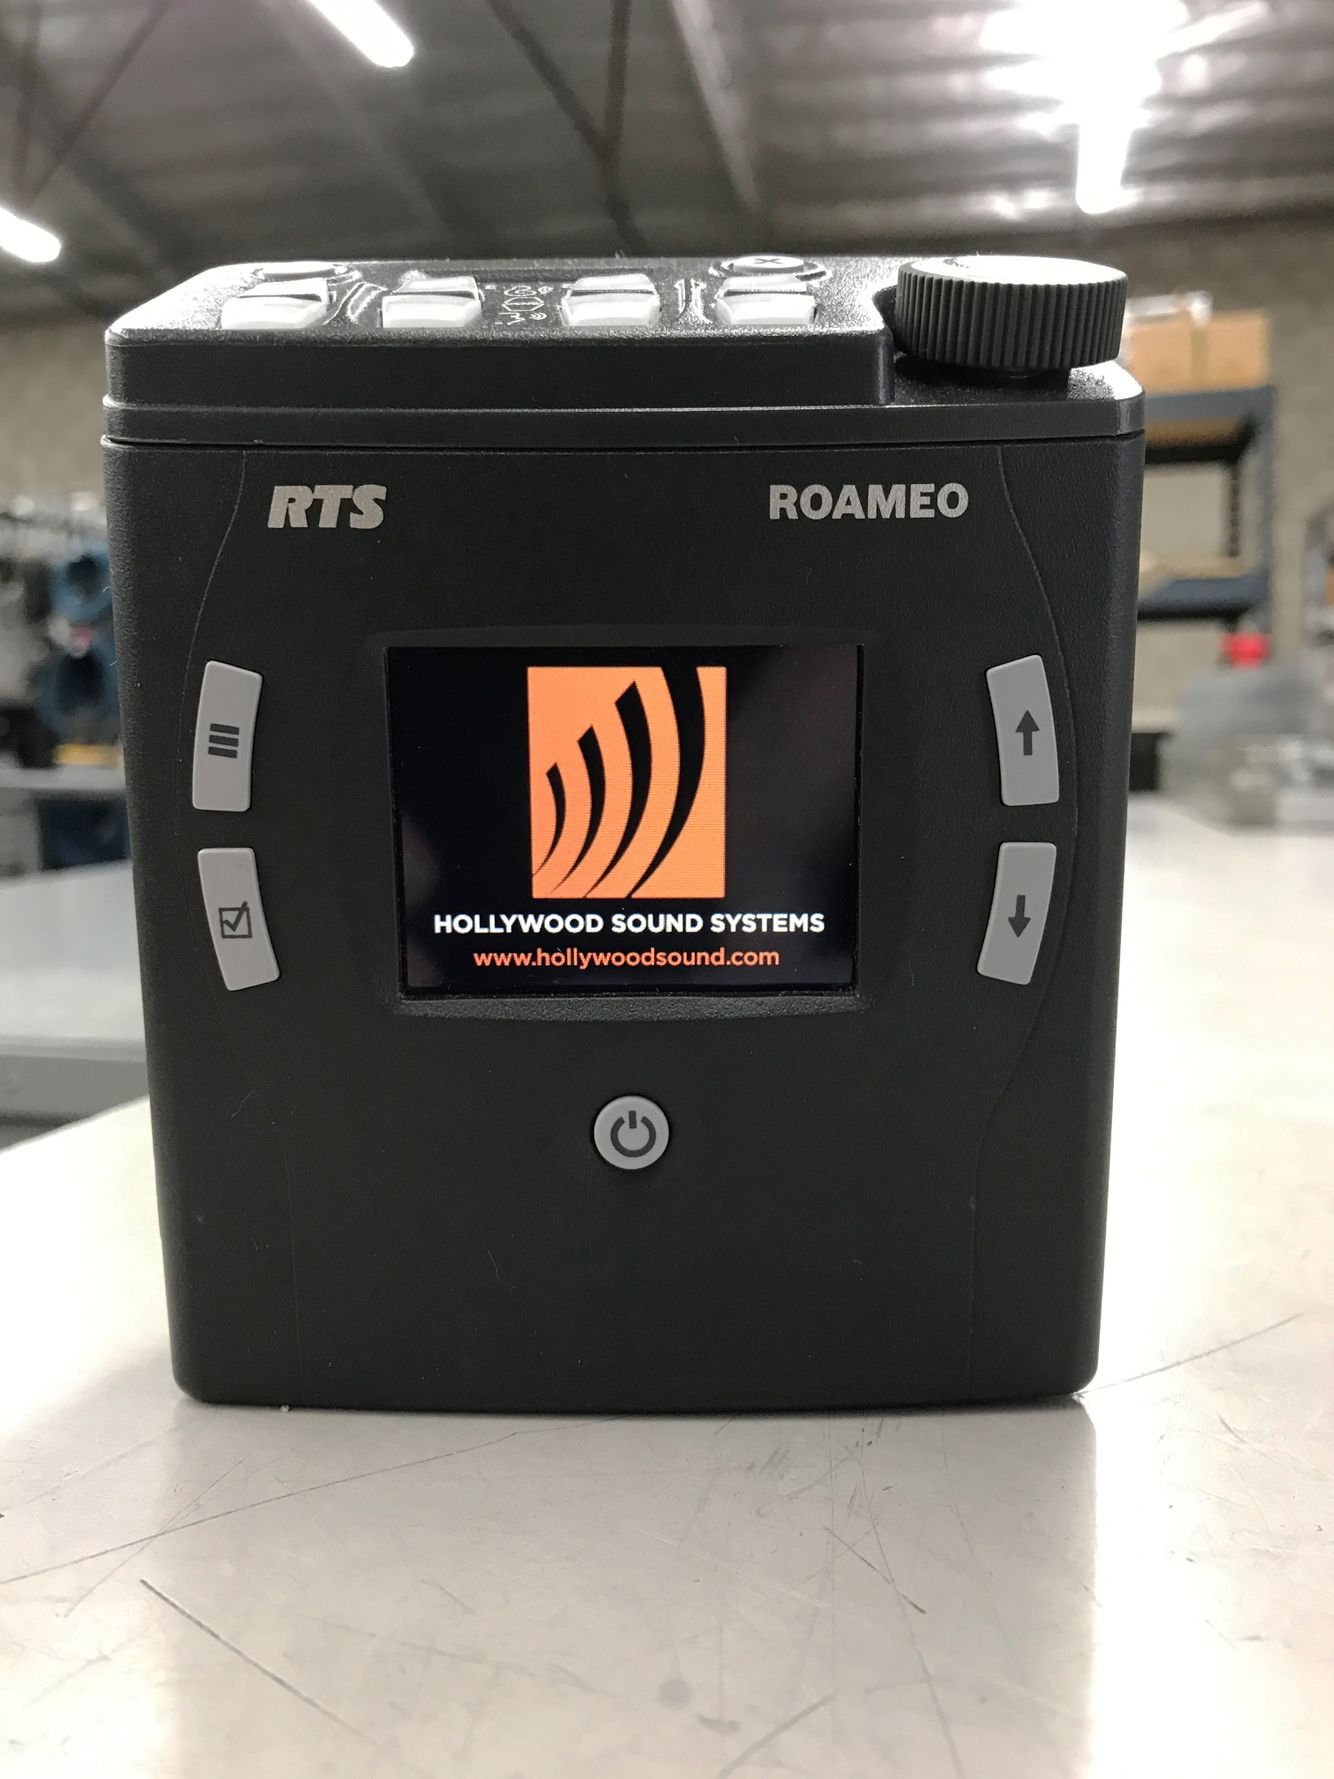 RTS ROAMEO TR-1800 Beltpack is available at Hollywood Sound Systems.